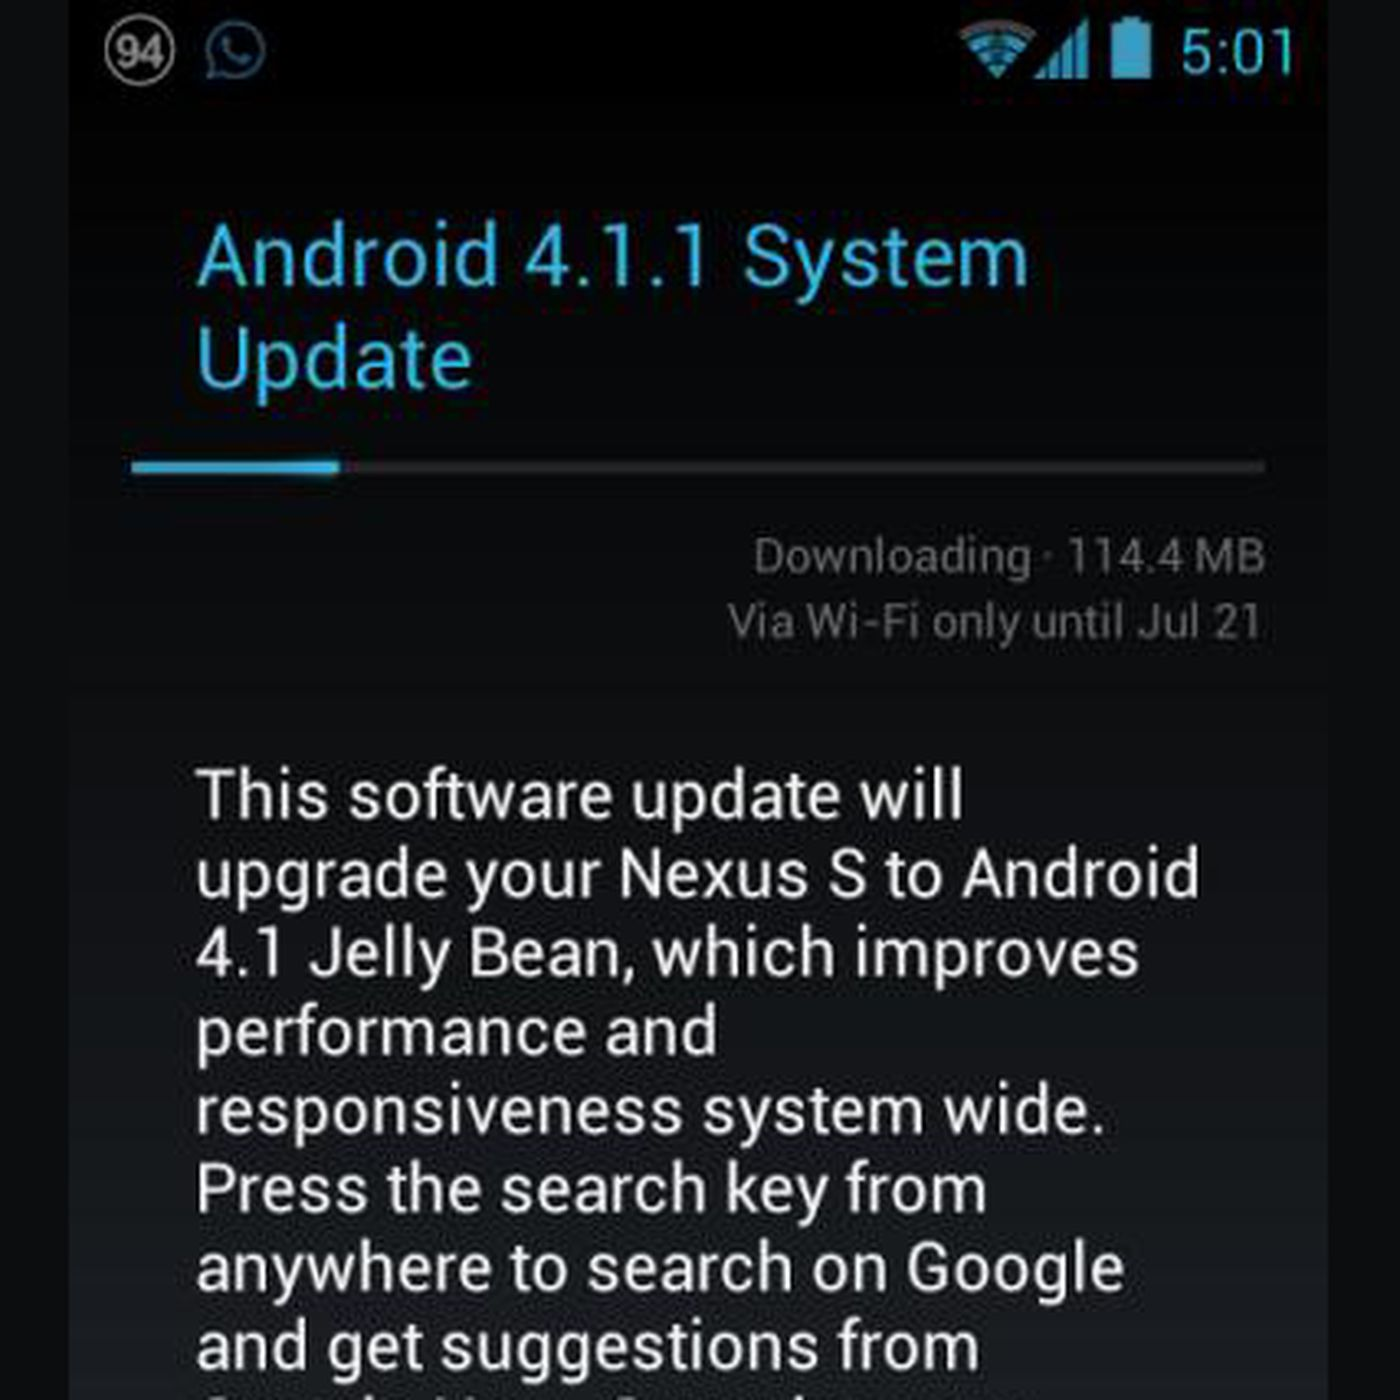 OTA Android 4 1 1 Jelly Bean update available for some Nexus